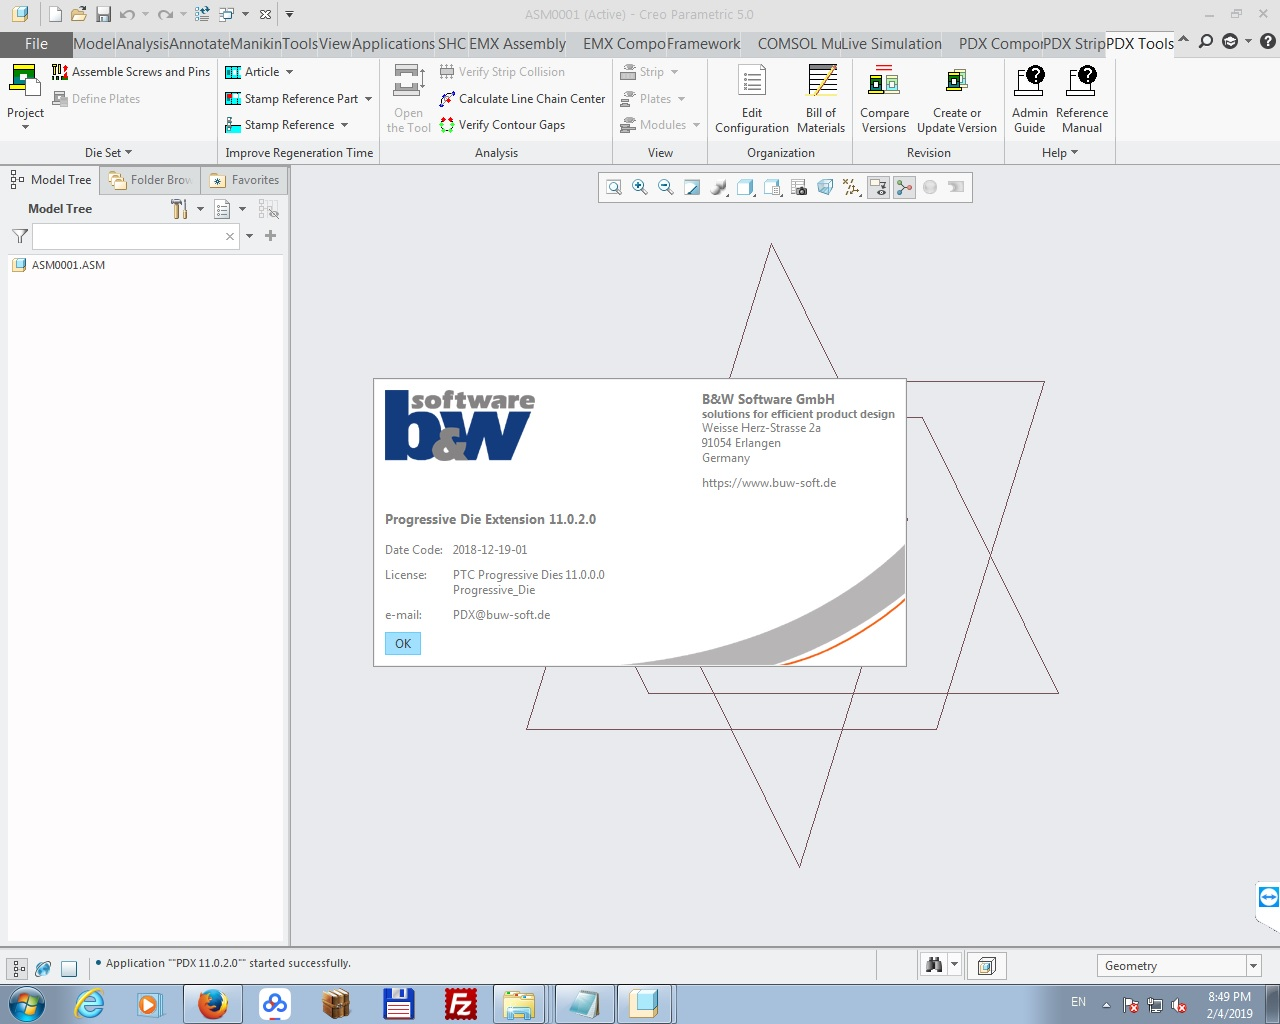 Working with PTC Creo PDX 11.0.2 for Creo 2.0-5.0 full license